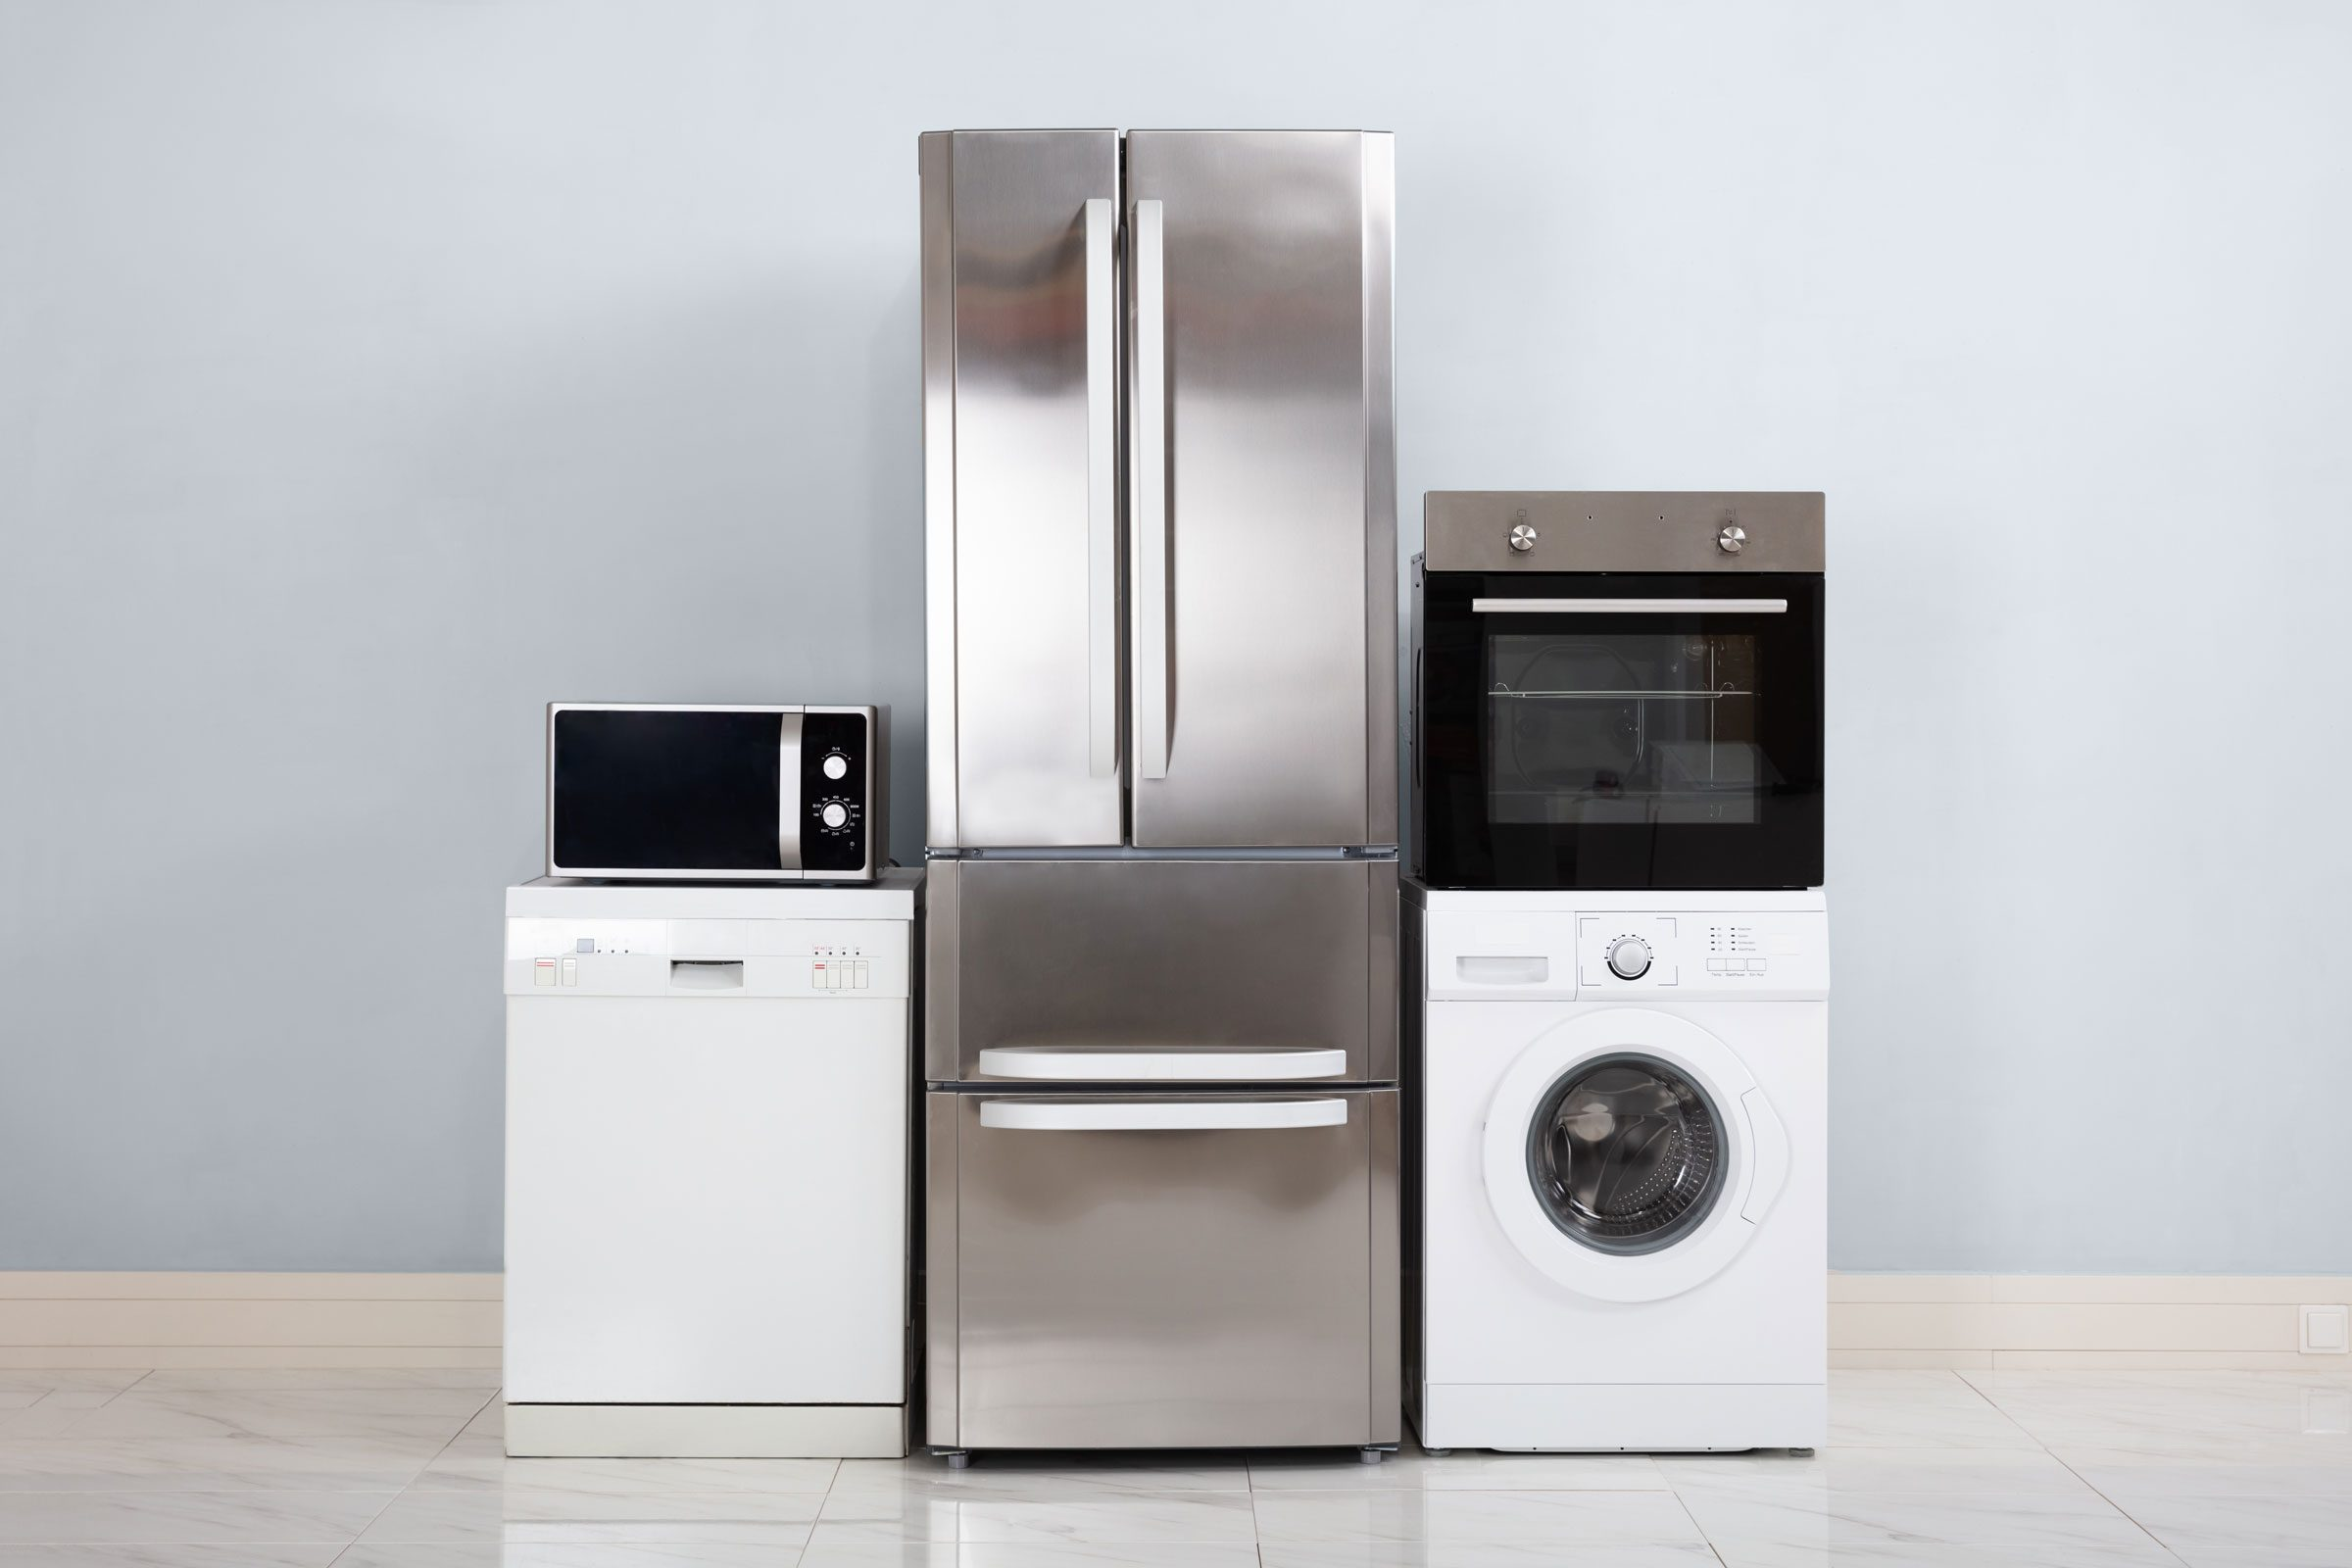 household appliances. microwave, dishwasher, refrigerator, oven, washing machine